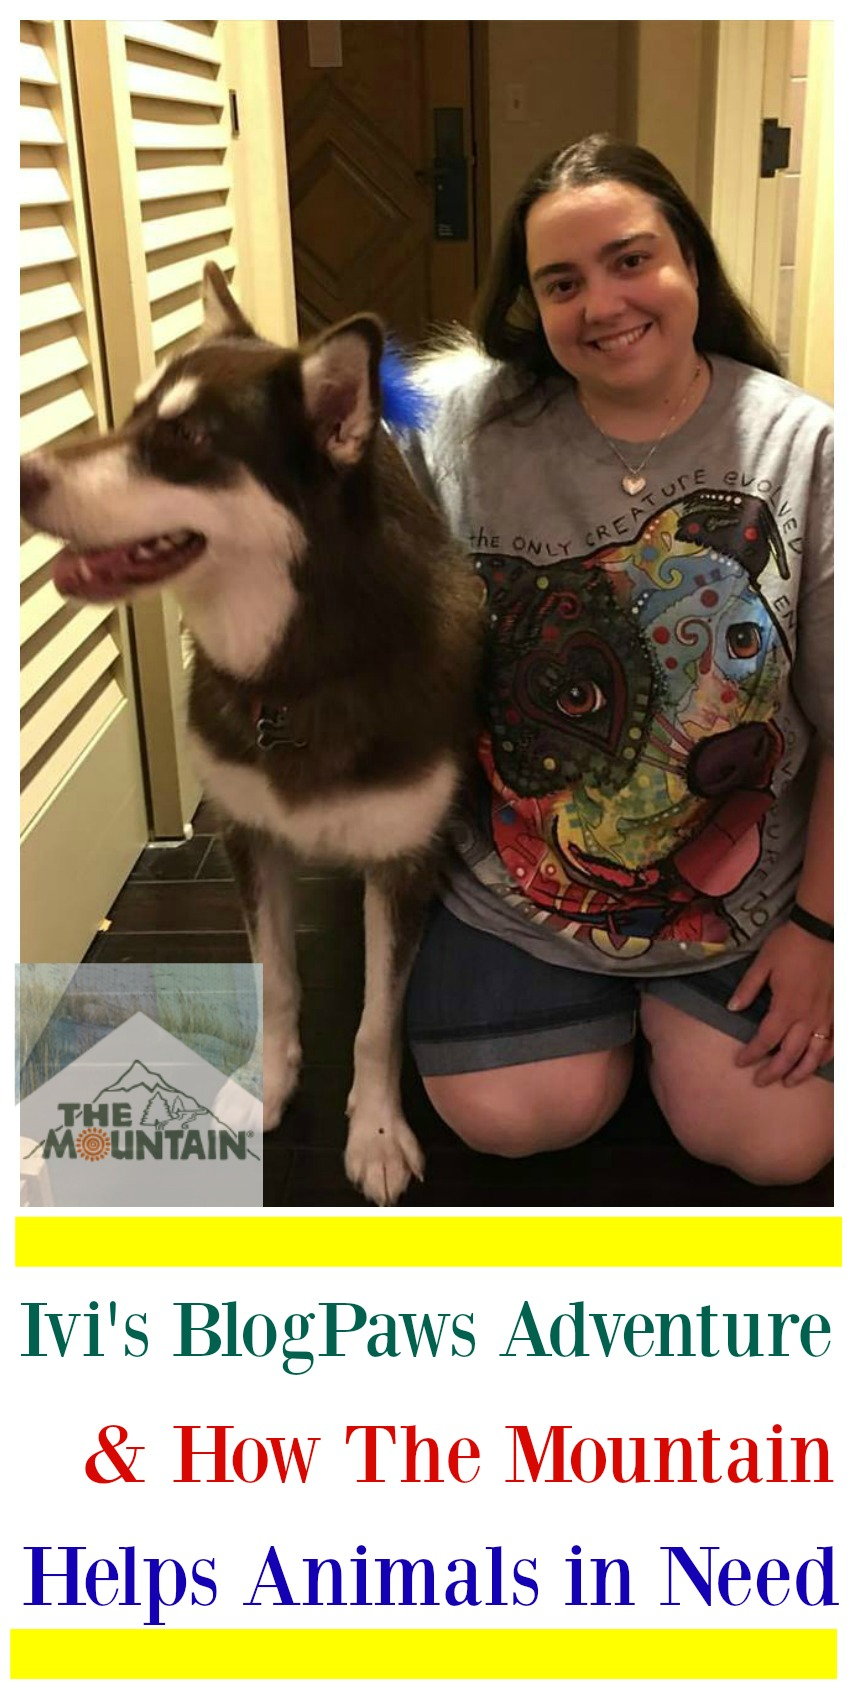 Ivi's #BlogPaws Adventure & How The Mountain Helps Animals in Need